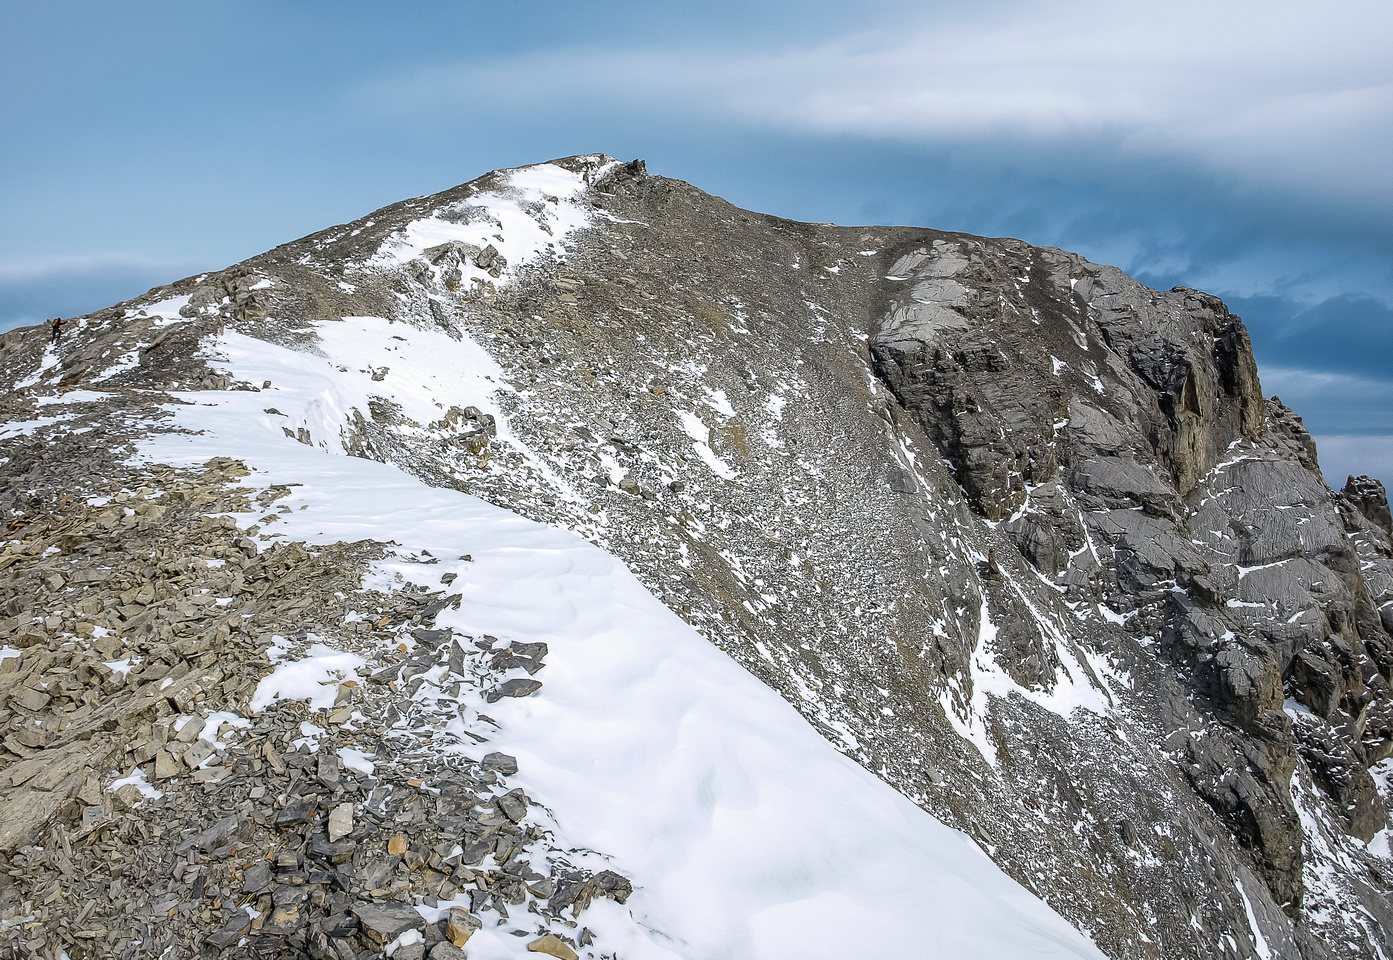 Ascending SW slopes to the summit.